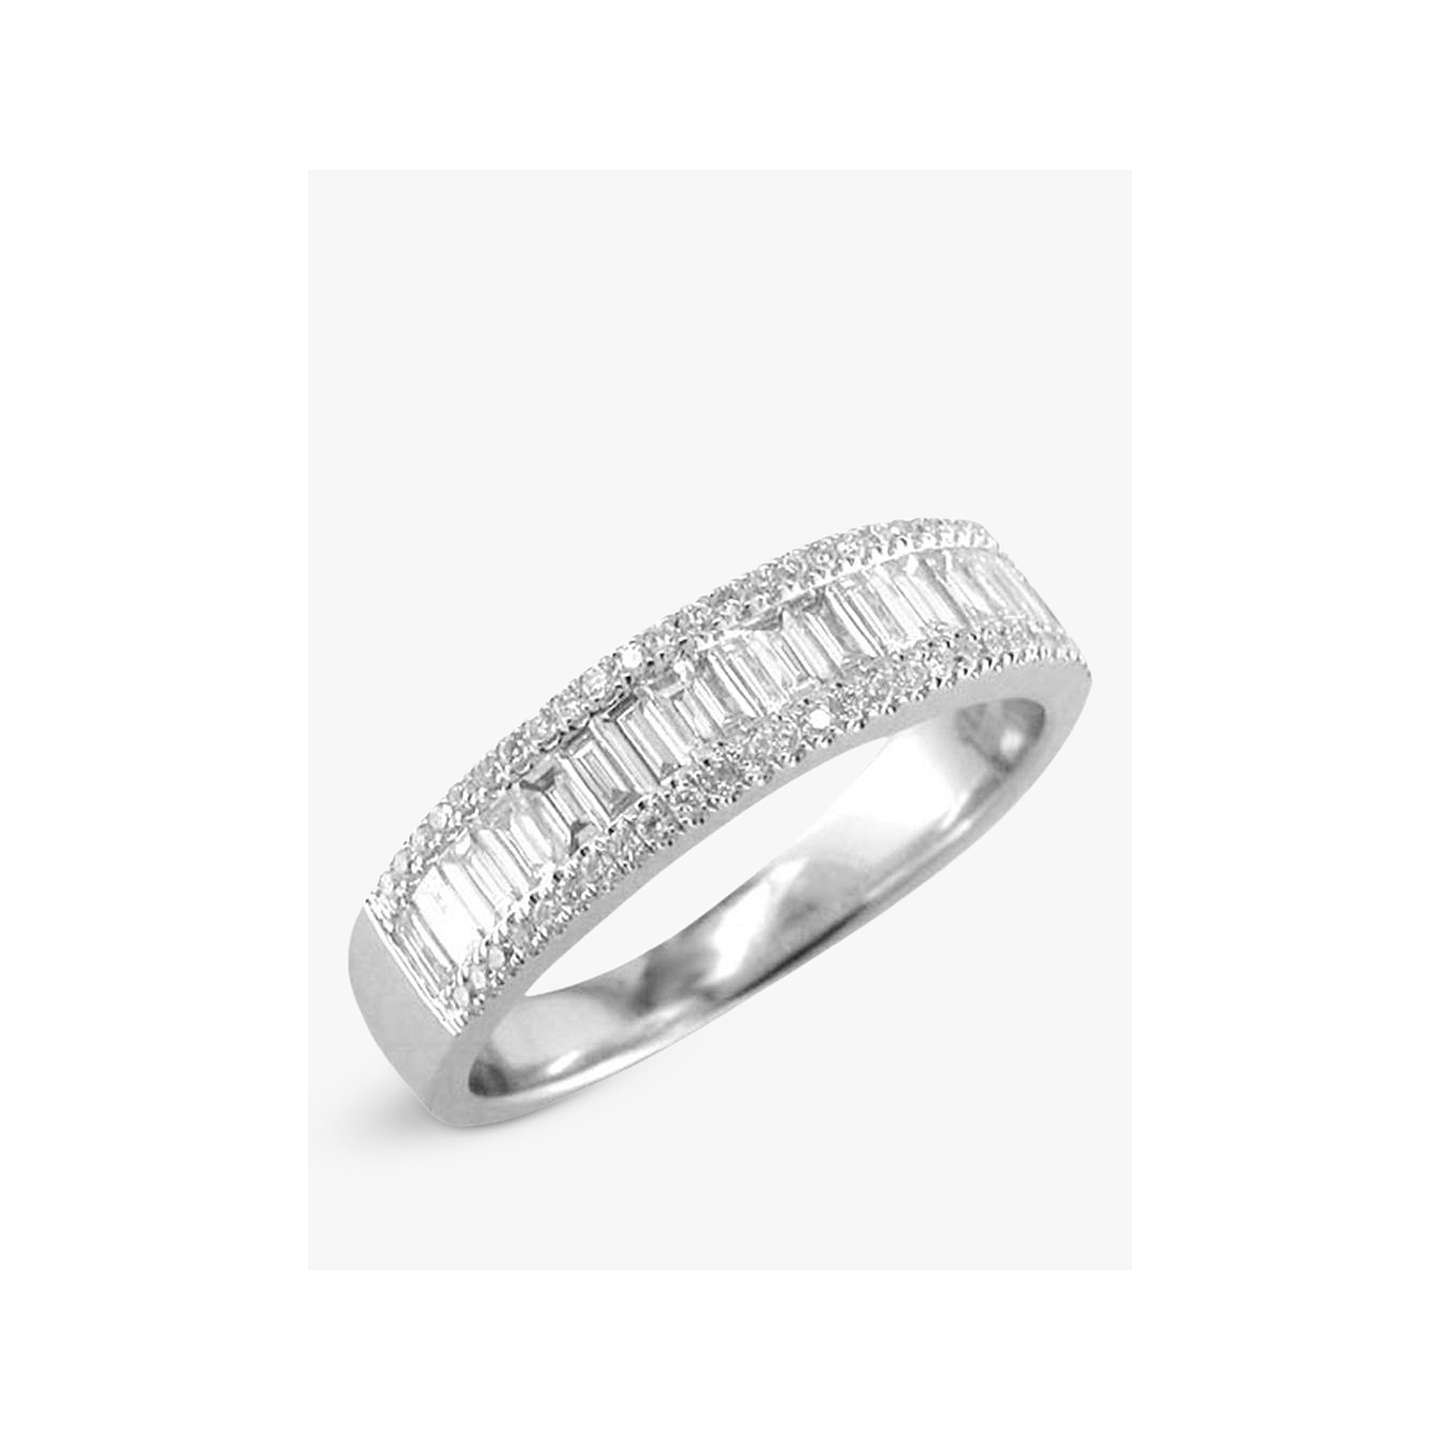 white diamond baguette at rings pdp half cut wedding eternity main rsp gold buyewa online ewa ring johnlewis